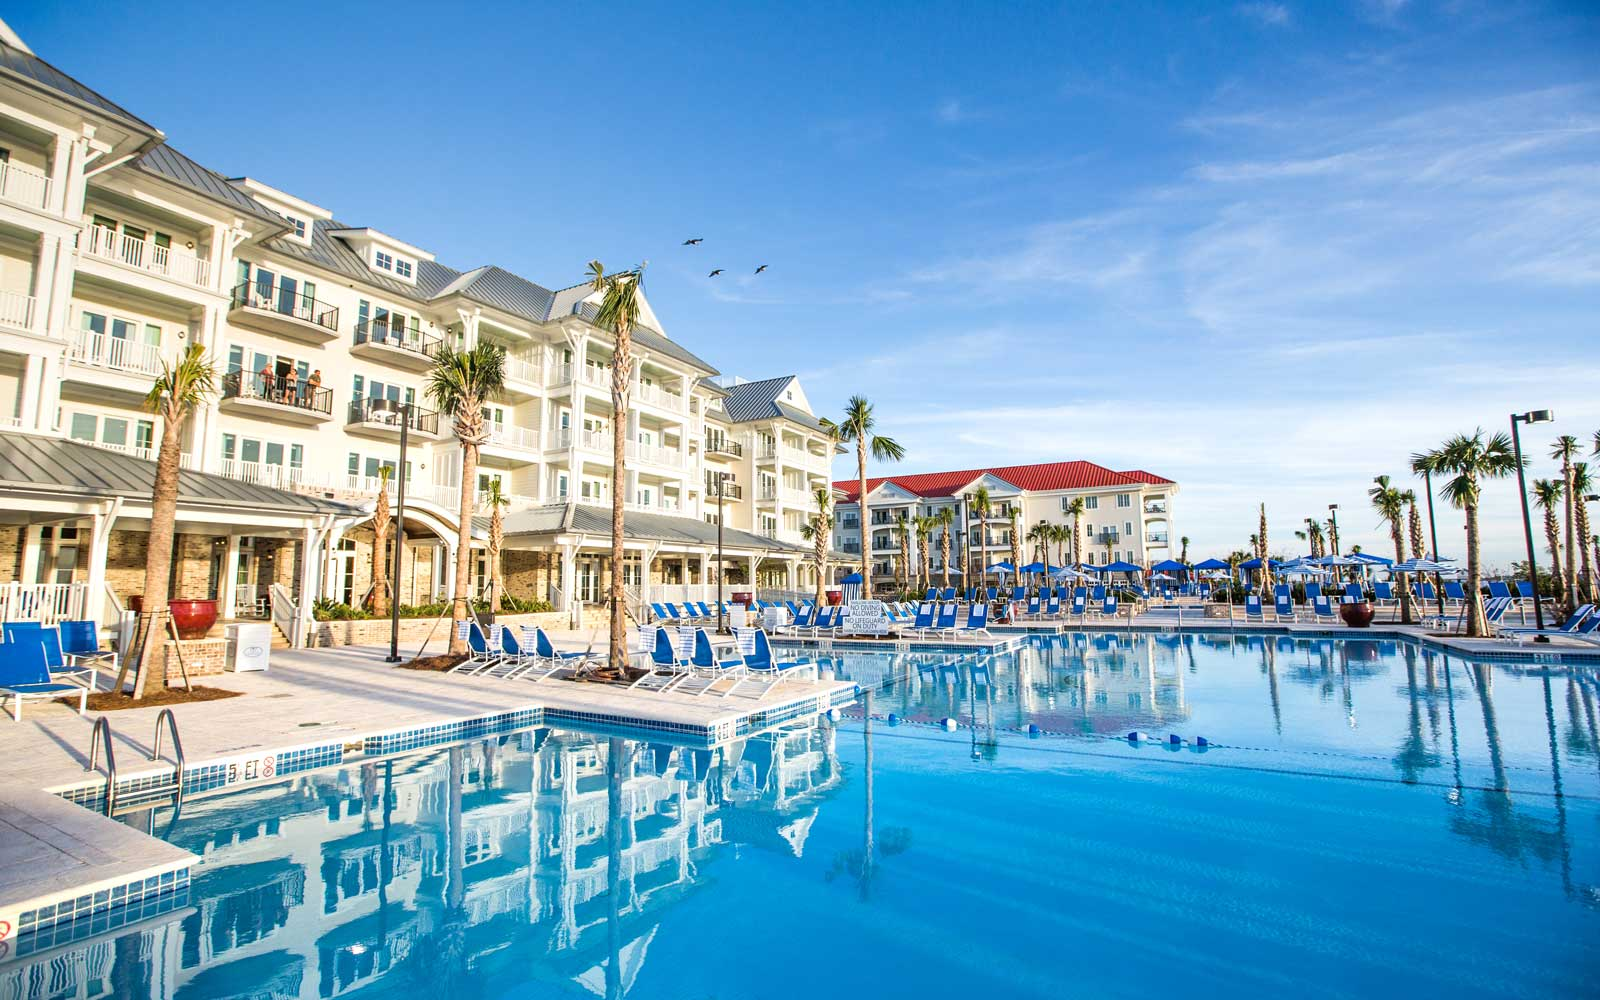 Save 30% off Stays at This Family-Friendly Resort on the Charleston Harbor